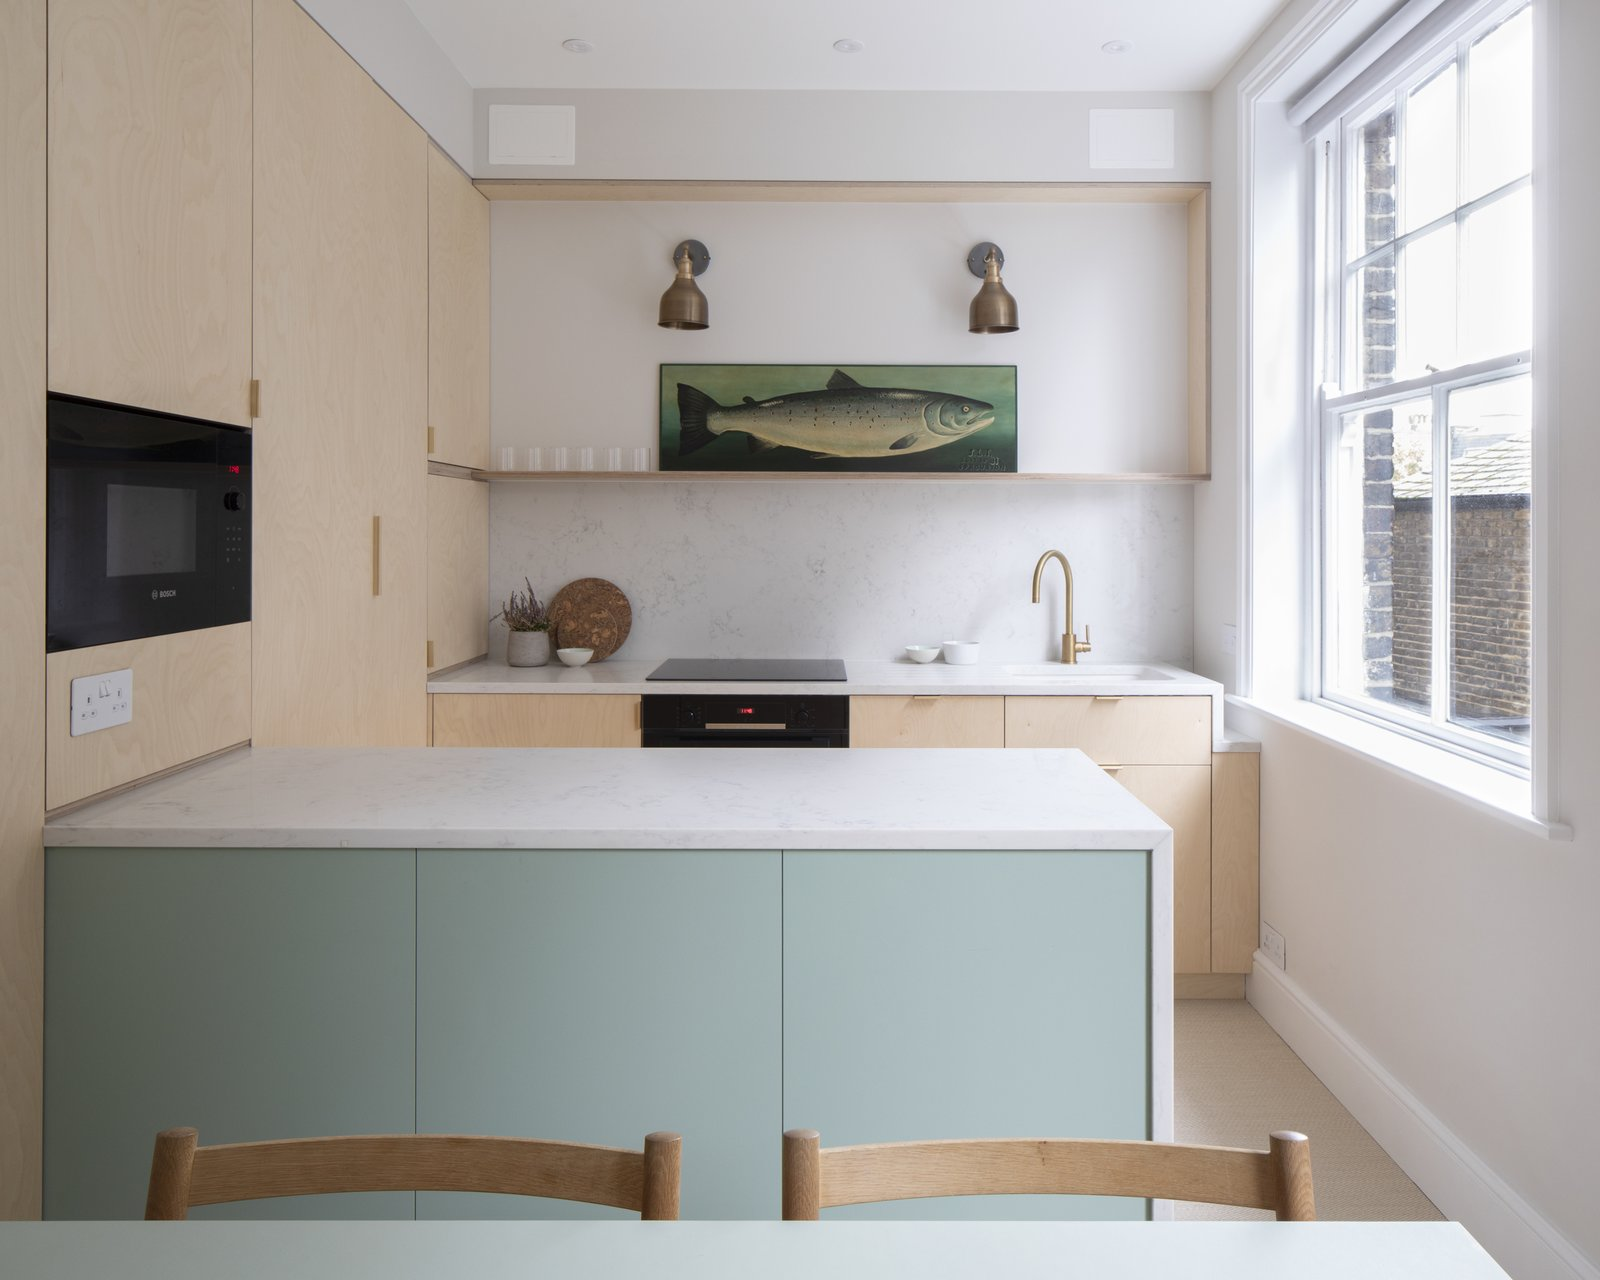 """In the kitchen, bespoke plywood panels wrap IKEA cabinet inserts for a high-end feel on a budget. """"The kitchen is a collection of very intricate details,"""" says Astrain, who fitted the space down to the last available millimeter. The space benefits from two windows now, thanks to the relocated dining area."""